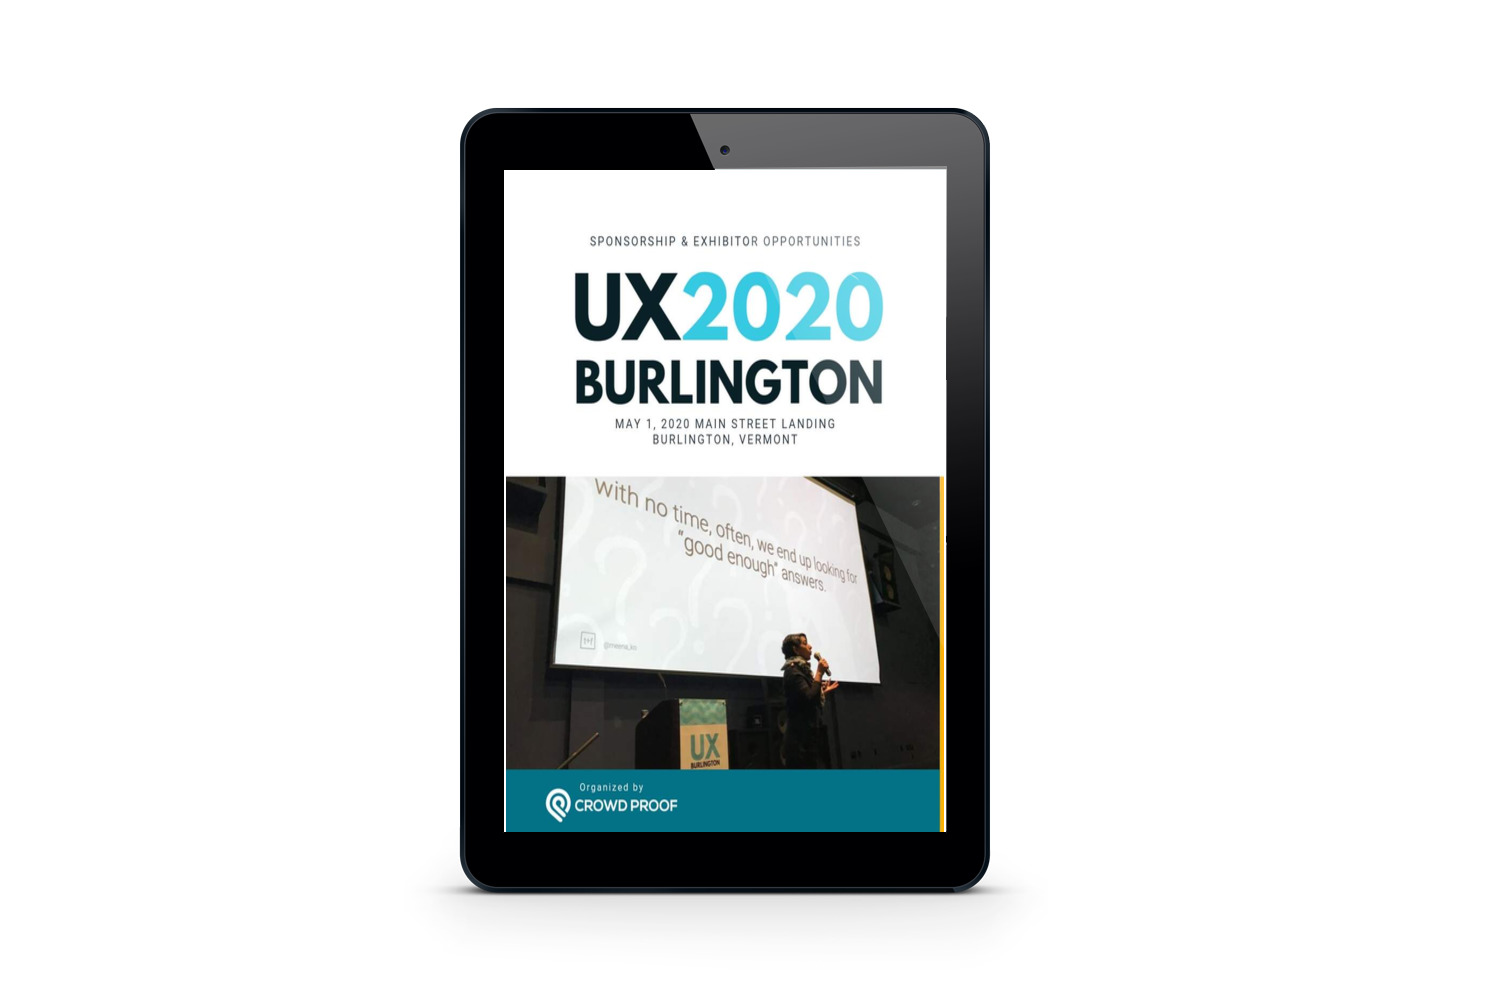 https://www.uxburlington.com/wp-content/uploads/2019/09/User-Experience-UX-conference-sponsorship-tablet-1.jpg